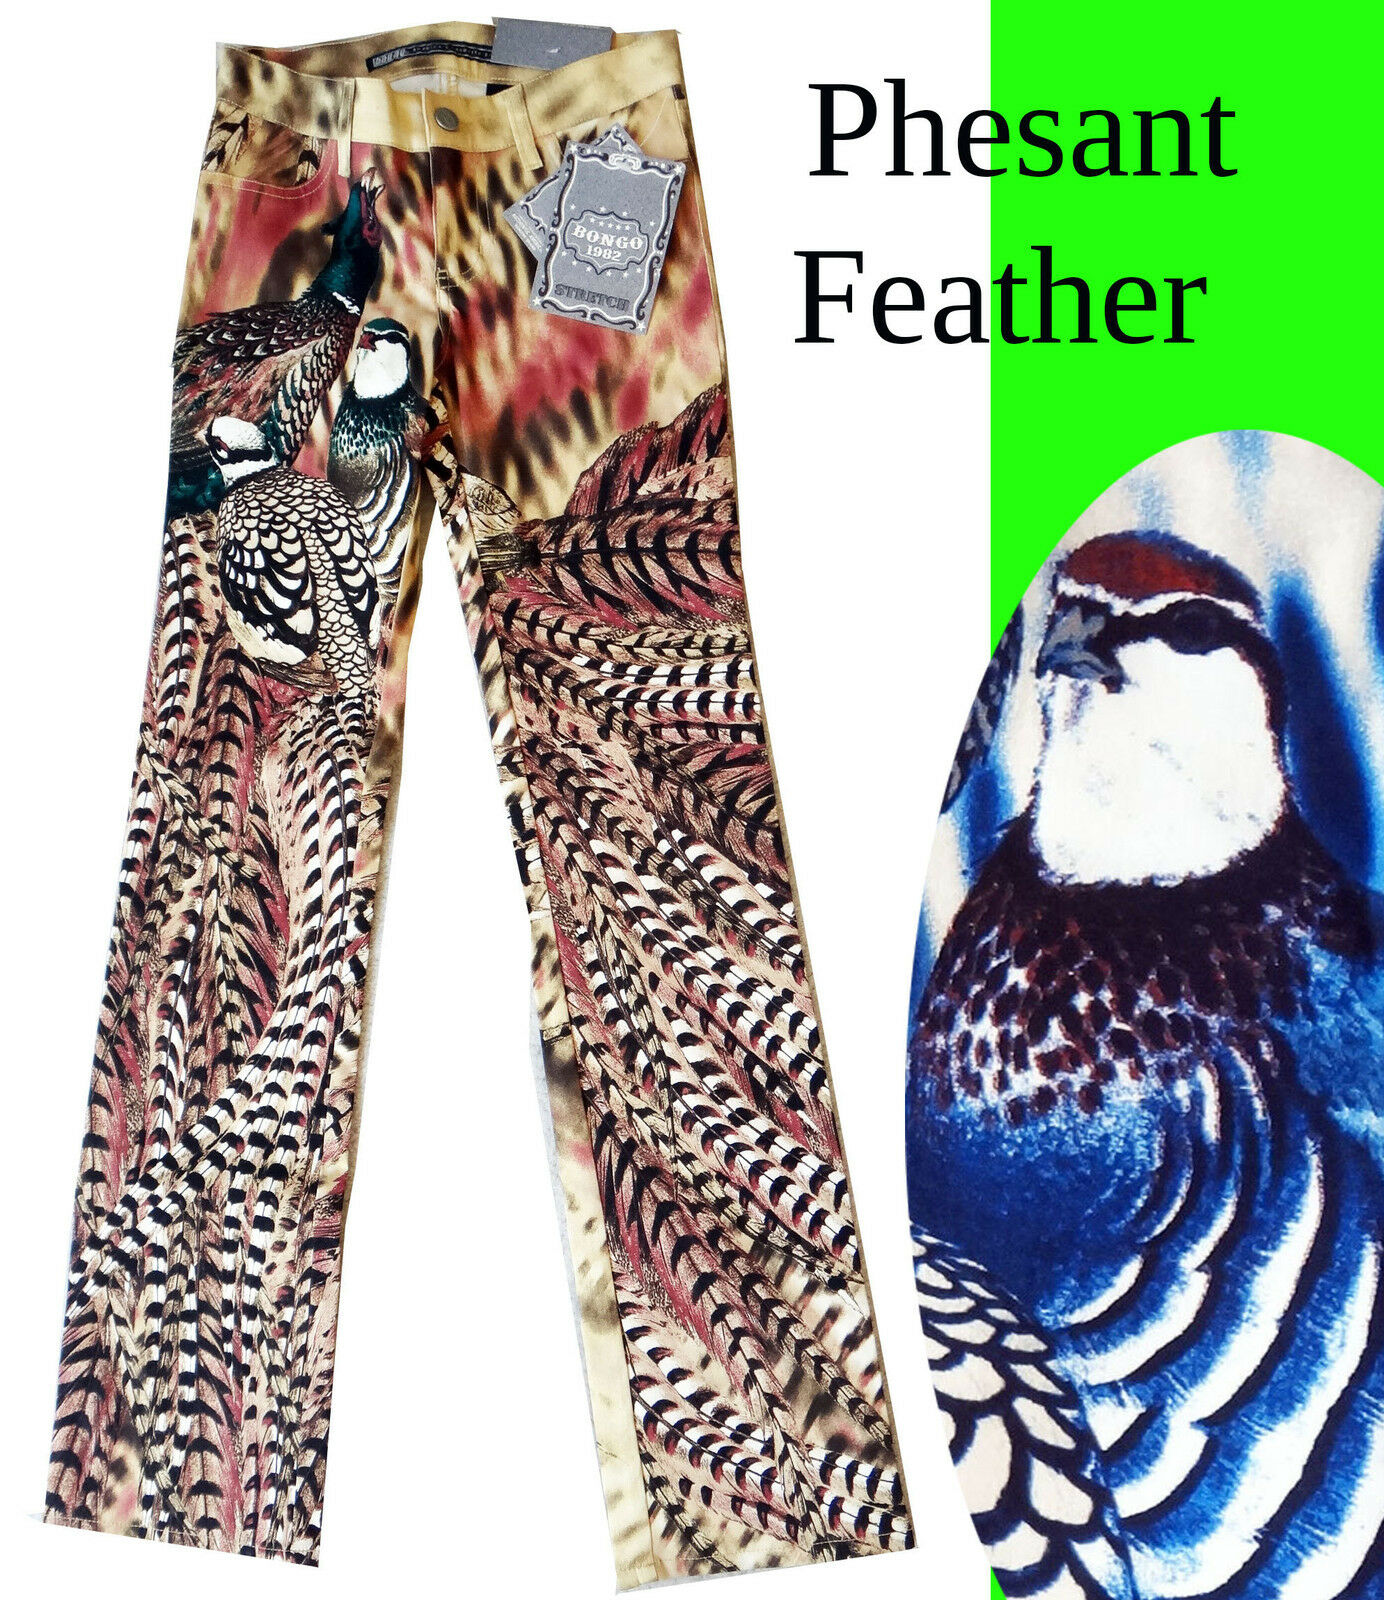 Pheasant Feather BIRD photo zebra stretch pant disco stripe tail hair 1984 bongo